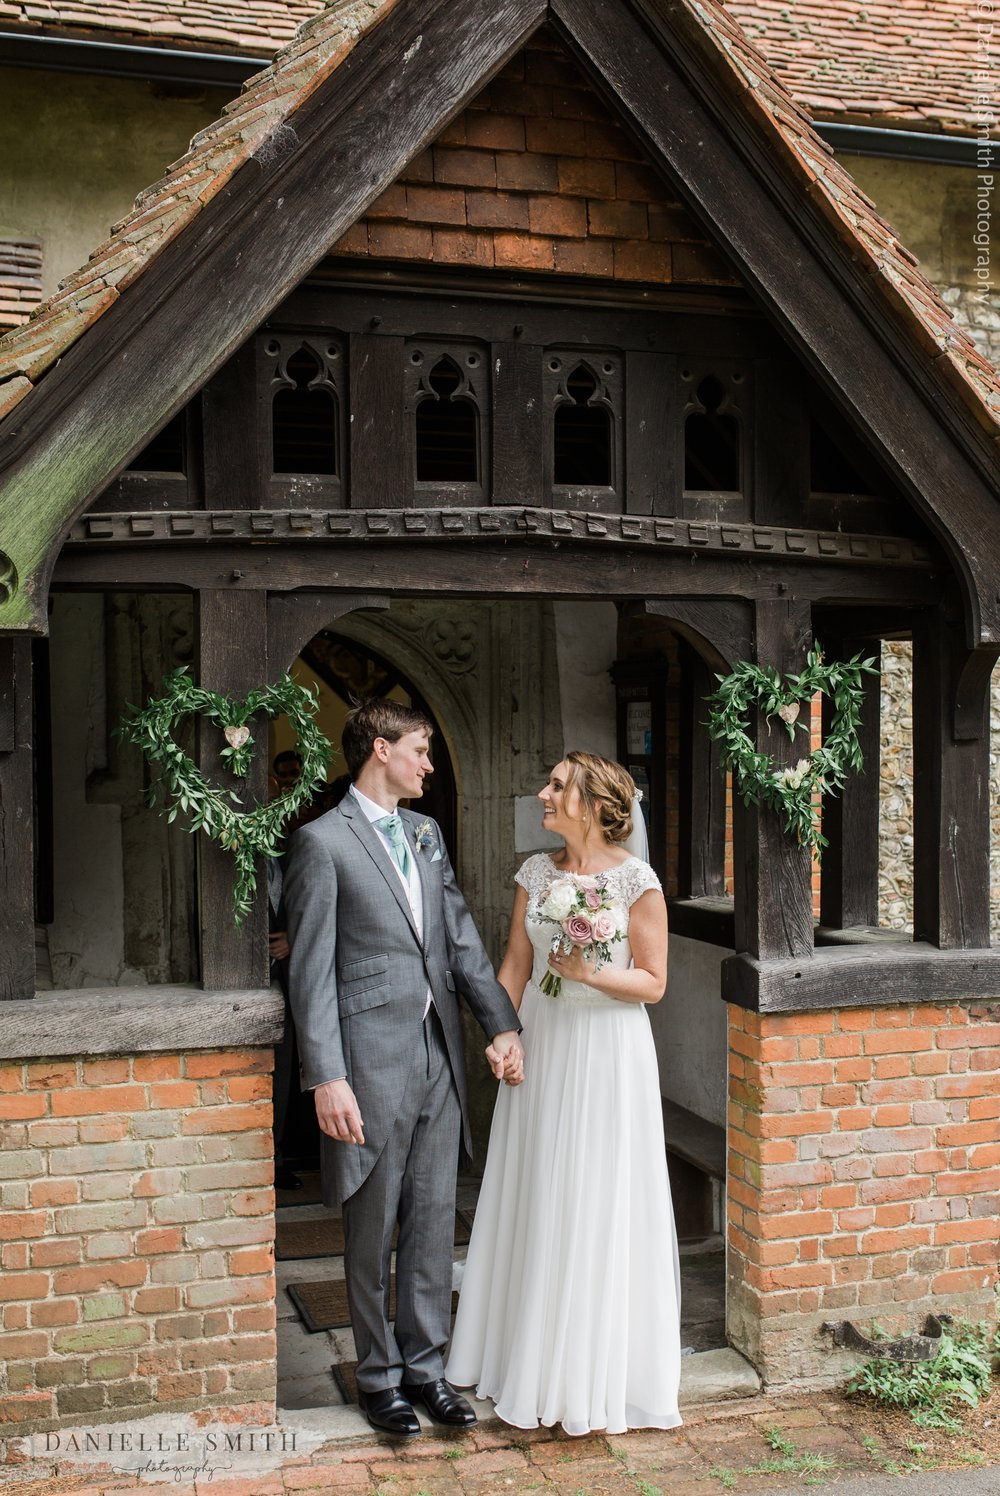 bride and groom outside church after wedding